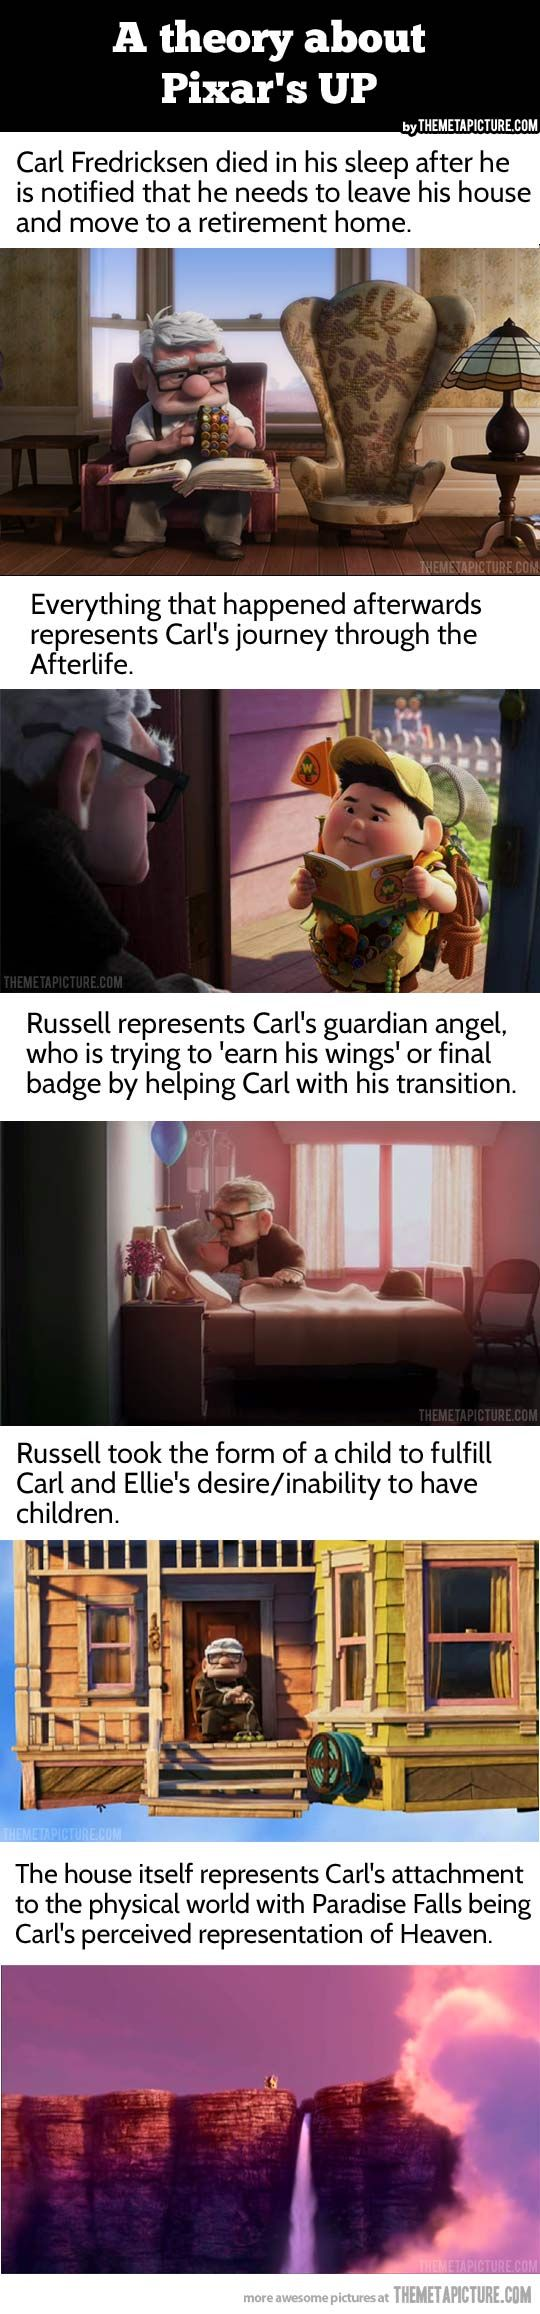 """I watched Up with this in mind.  Chad pointed out that when Carl first meets Russell, Russell is asking him if he can help him cross the road, cross the yard, cross his living room… then when he's turned down, he gets flustered, """"Well, I have to help you cross SOMETHING."""" Yeah.  Boom.  Mind blown."""